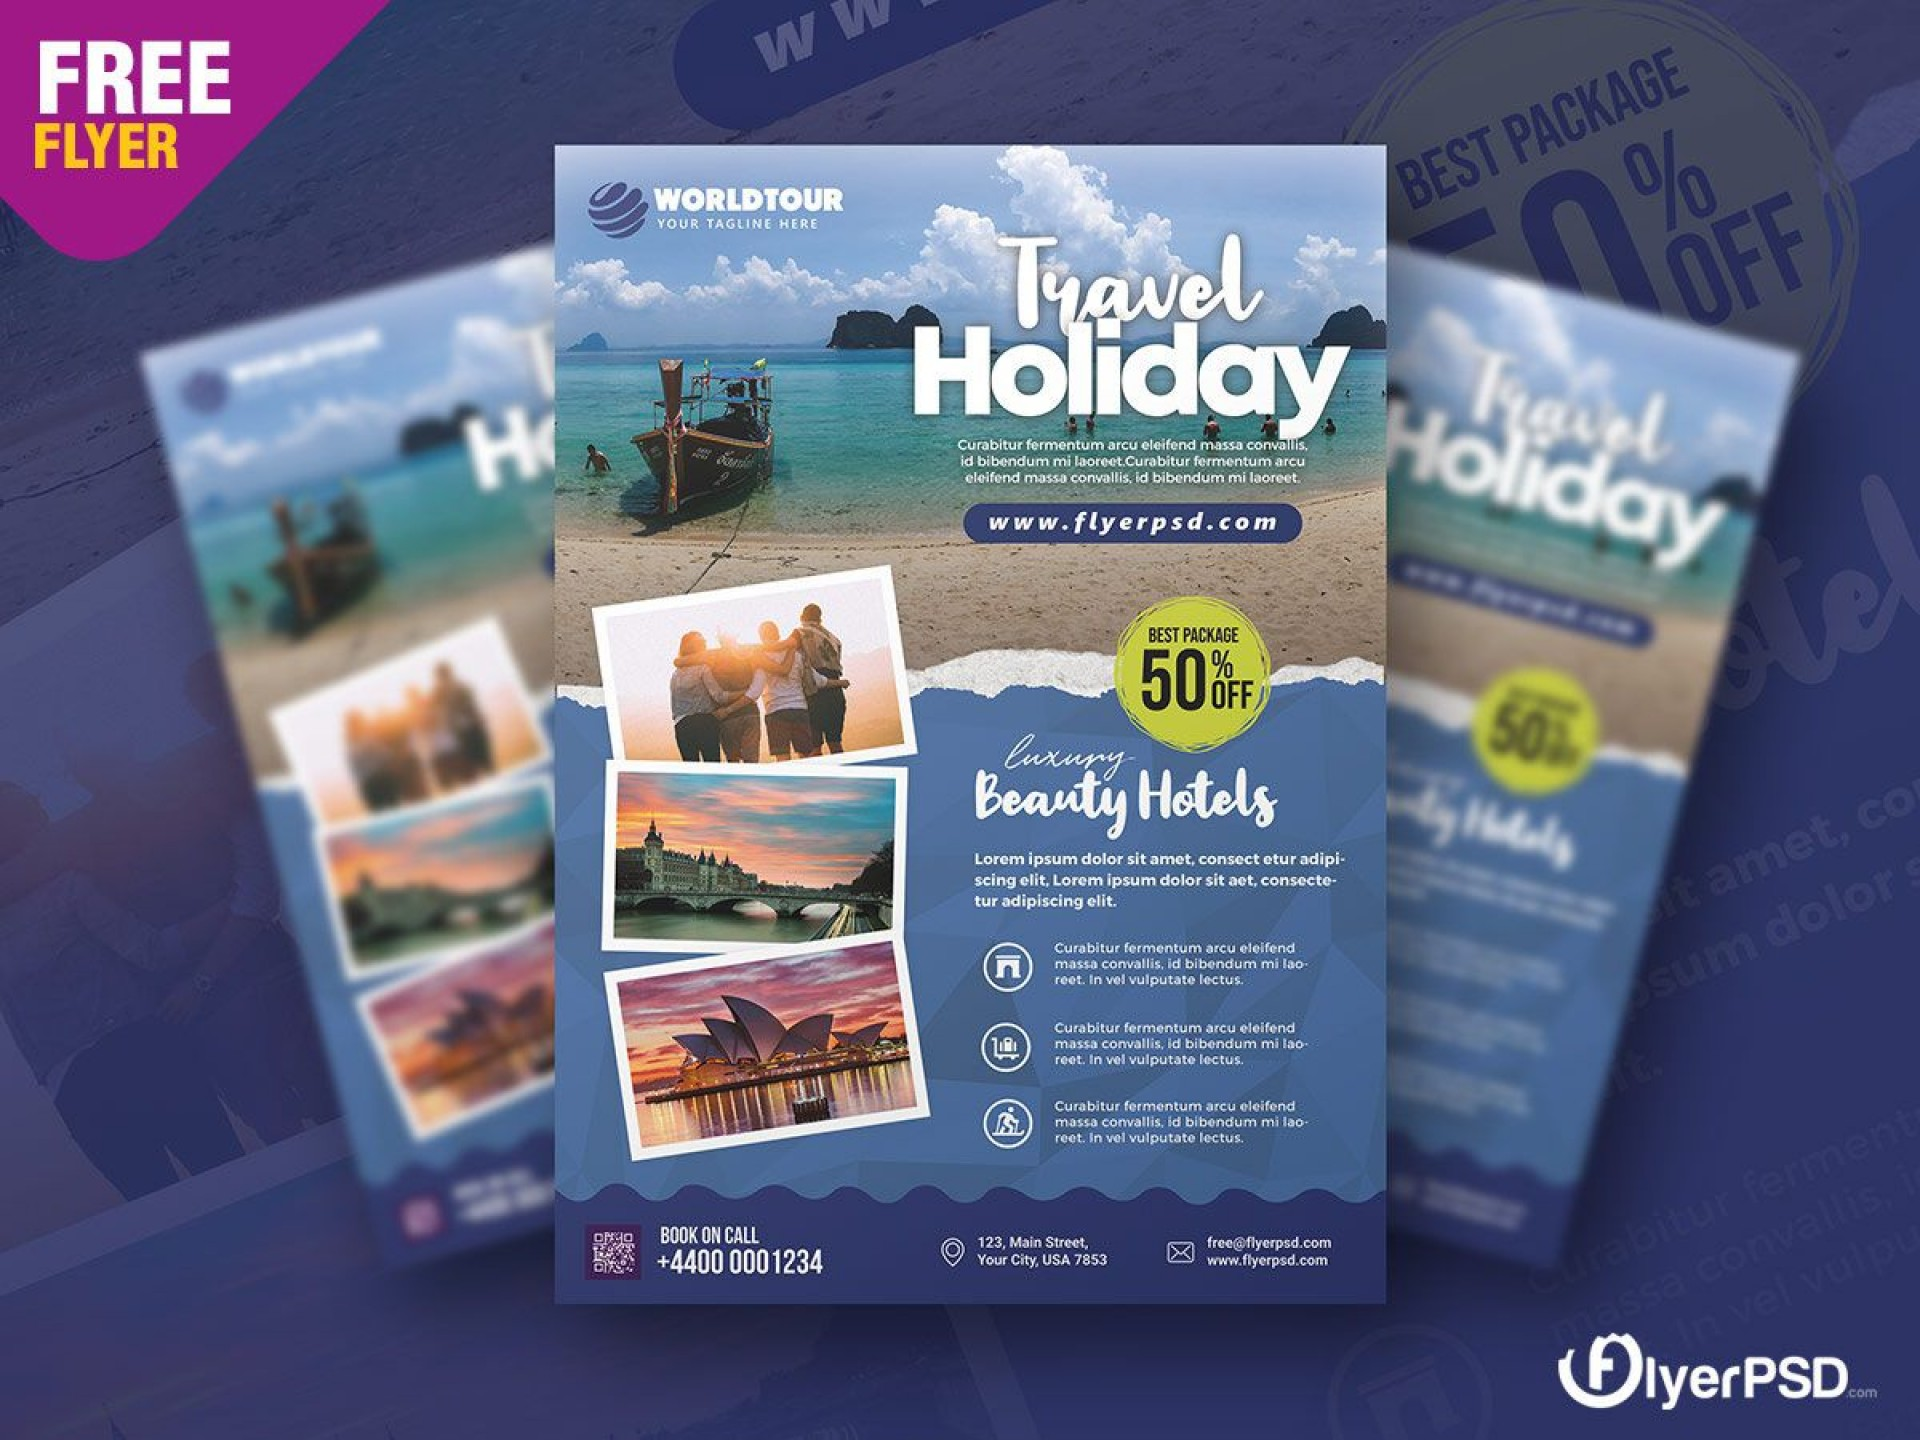 002 Unusual Free Travel Flyer Template Download Concept 1920